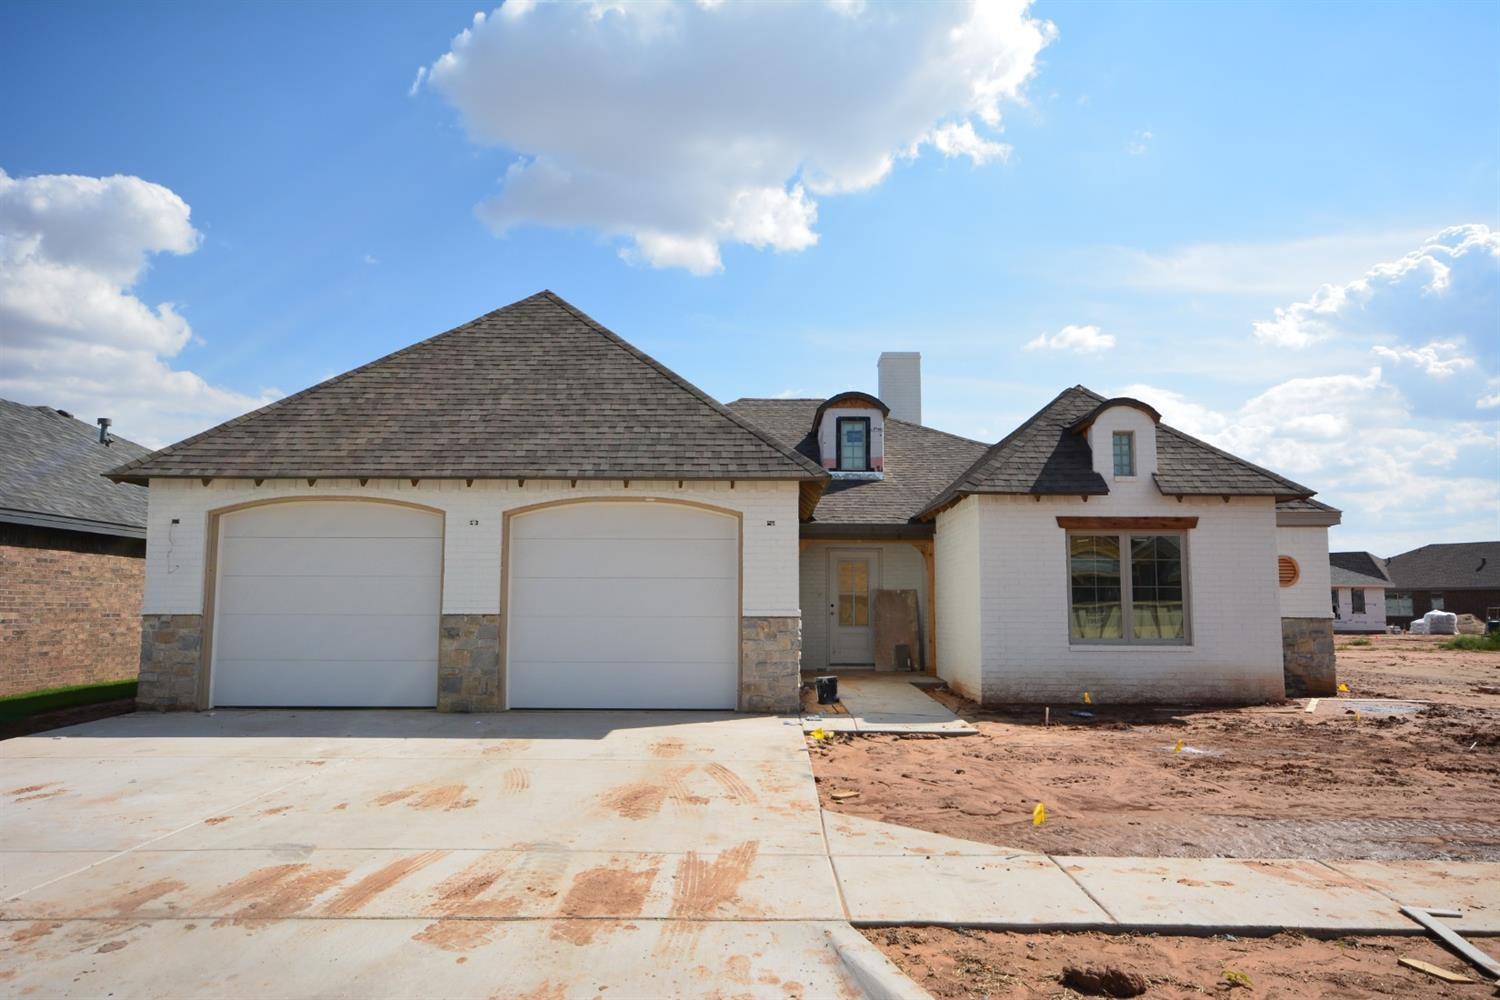 French Country Style 4/3/2 Home in Hatton Place by Ventura Homes w/Bonus Room! Spacious Living Room with Fireplace & Vault Ceilings! Stunning Kitchen with Granite, Farmhouse Sink, Gas Range with Custom Vent Hood, Stainless Steel Appliances, Commercial Side By Side Refrigerator/ Freezer & Butlers Pantry! Indoor/Outdoor Entertaining Space with Bonus Room combines to complete your Entertaining Space! Isolated Master Suite with Special Ceilings & Built in Dressers. Spa-Like Master Bath offers Double Vanities, Tiled Shower, Soaking Tub & Ample Closet Space! Bedrooms 2 & 3 share Jack-n-Jill bath! Isolated 4th Bedroom with 3rd Full Bath! Additional Features are Foam Insulation, 2Faux Wood Blinds, Mud Room, Cabinet Hardware, Built-in Linen Storage in Baths & Laundry Room, Large Pantry, Special Ceilings, Sprinklers, Sod, Fully Landscaped, 1-2-10 Builders warranty! Walk to Cooper Laura Bush Middle School! Minutes from Shopping & Restaurants! Come check out the Ventura Homes Difference